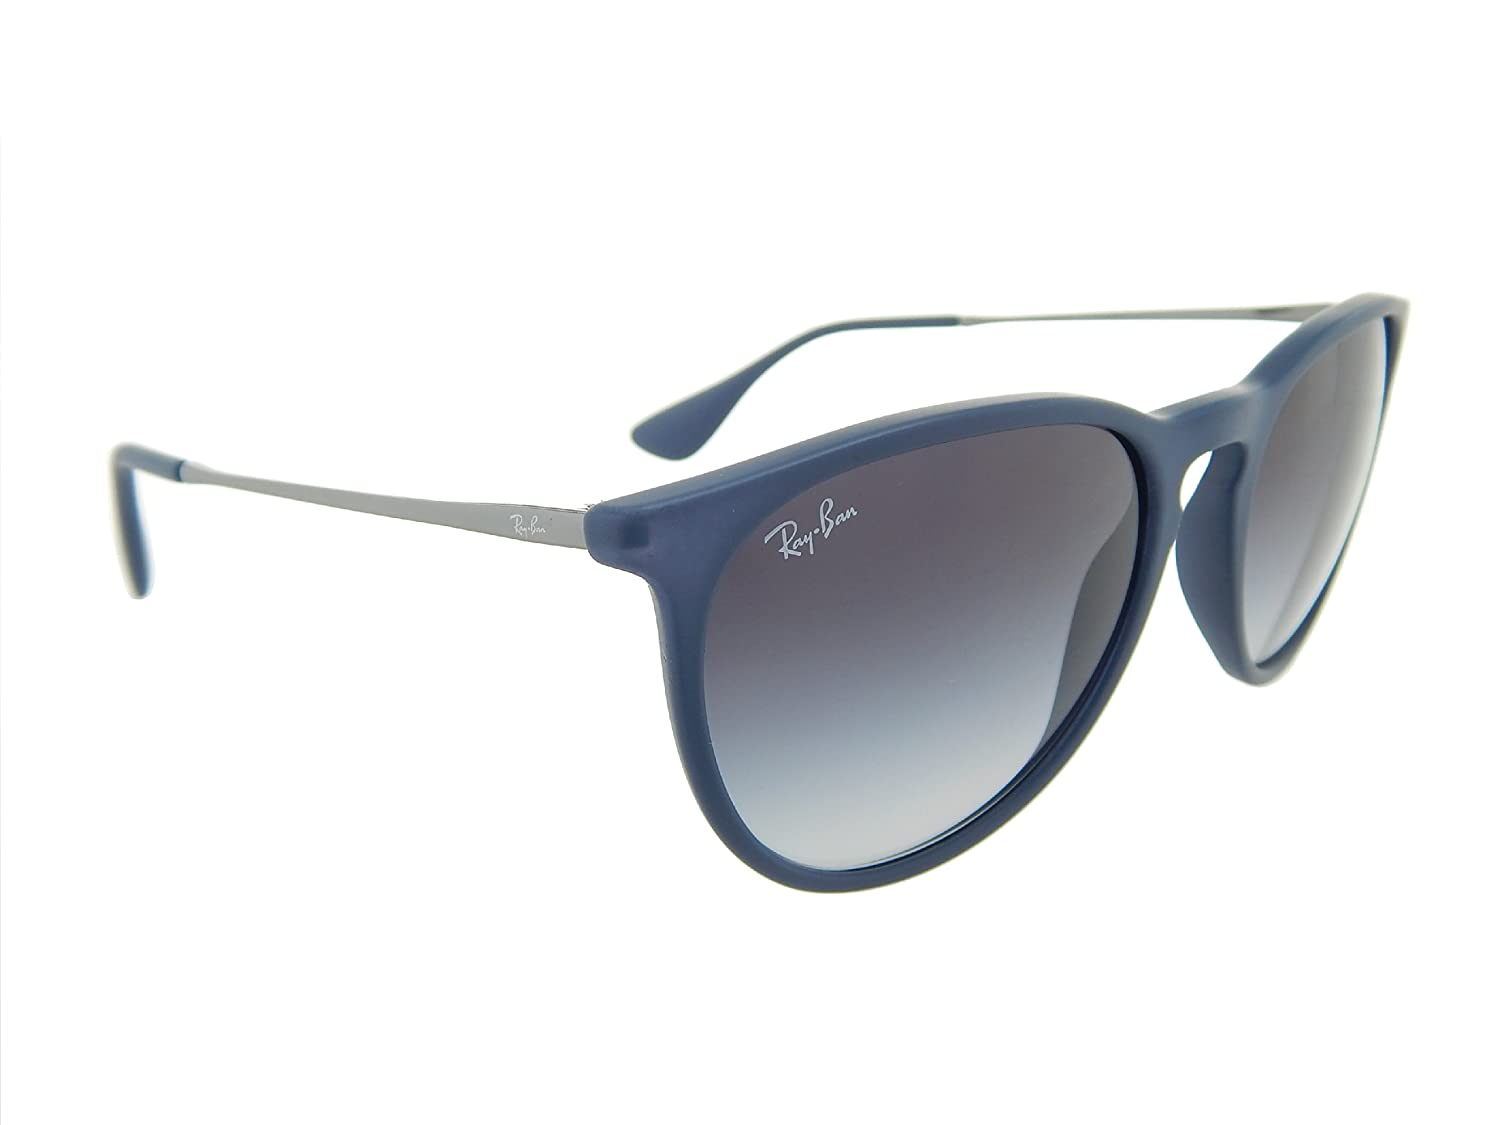 0e05f86e17b Amazon.com  New Ray Ban Erika Rubber RB4171 60028G Blue Grey Gradient Lens  54mm Sunglasses  Shoes